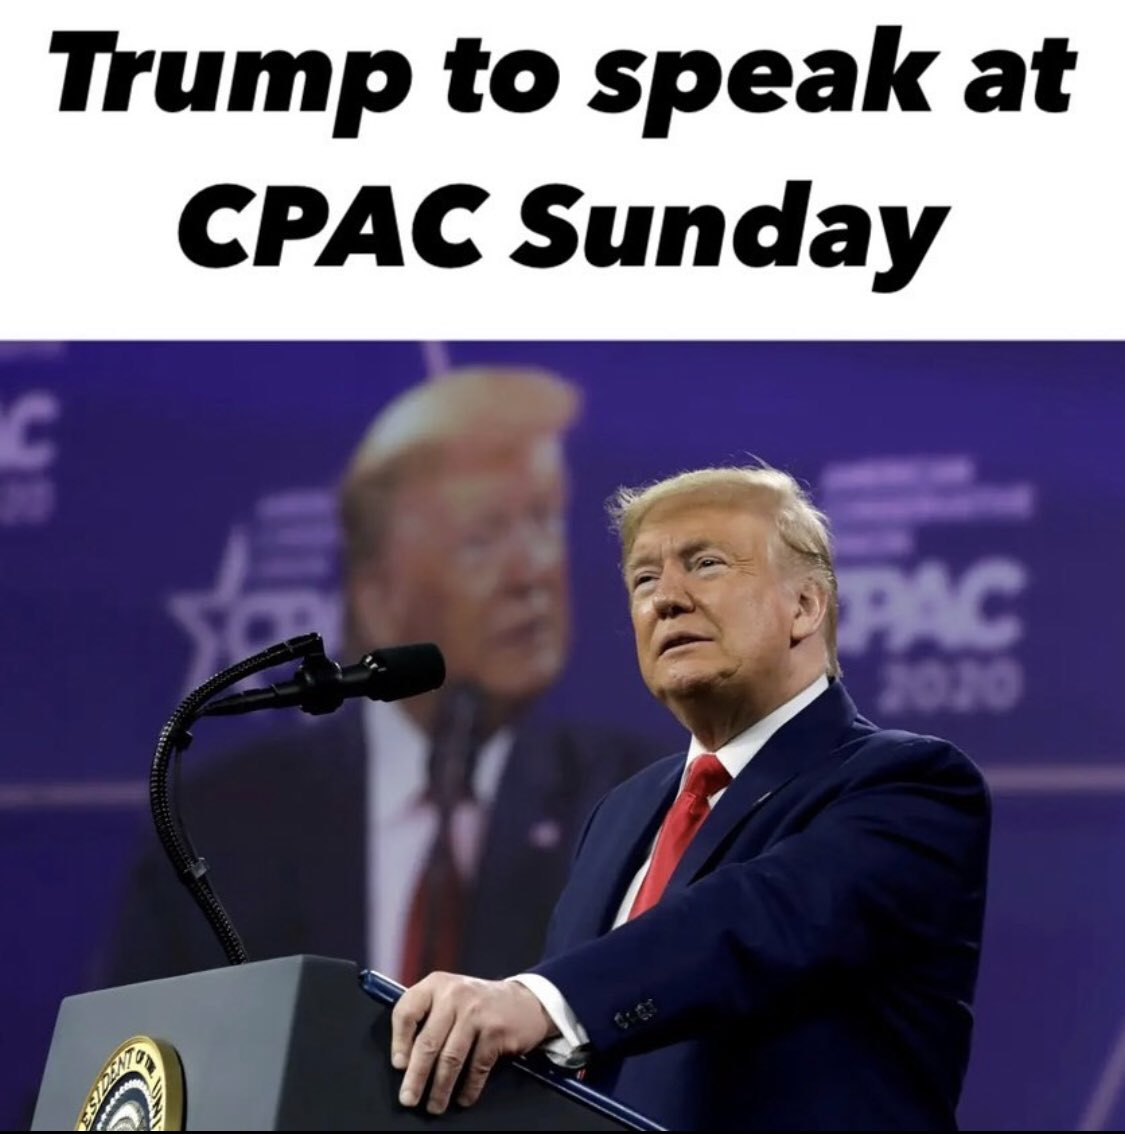 Donald Trump will be speaking at CPAC on Sunday 🇺🇸 #ExposeTheDeepState #DrainTheSwamp #LaunchAmerica #SaveAmerica #CPAC #Trump #MAGA